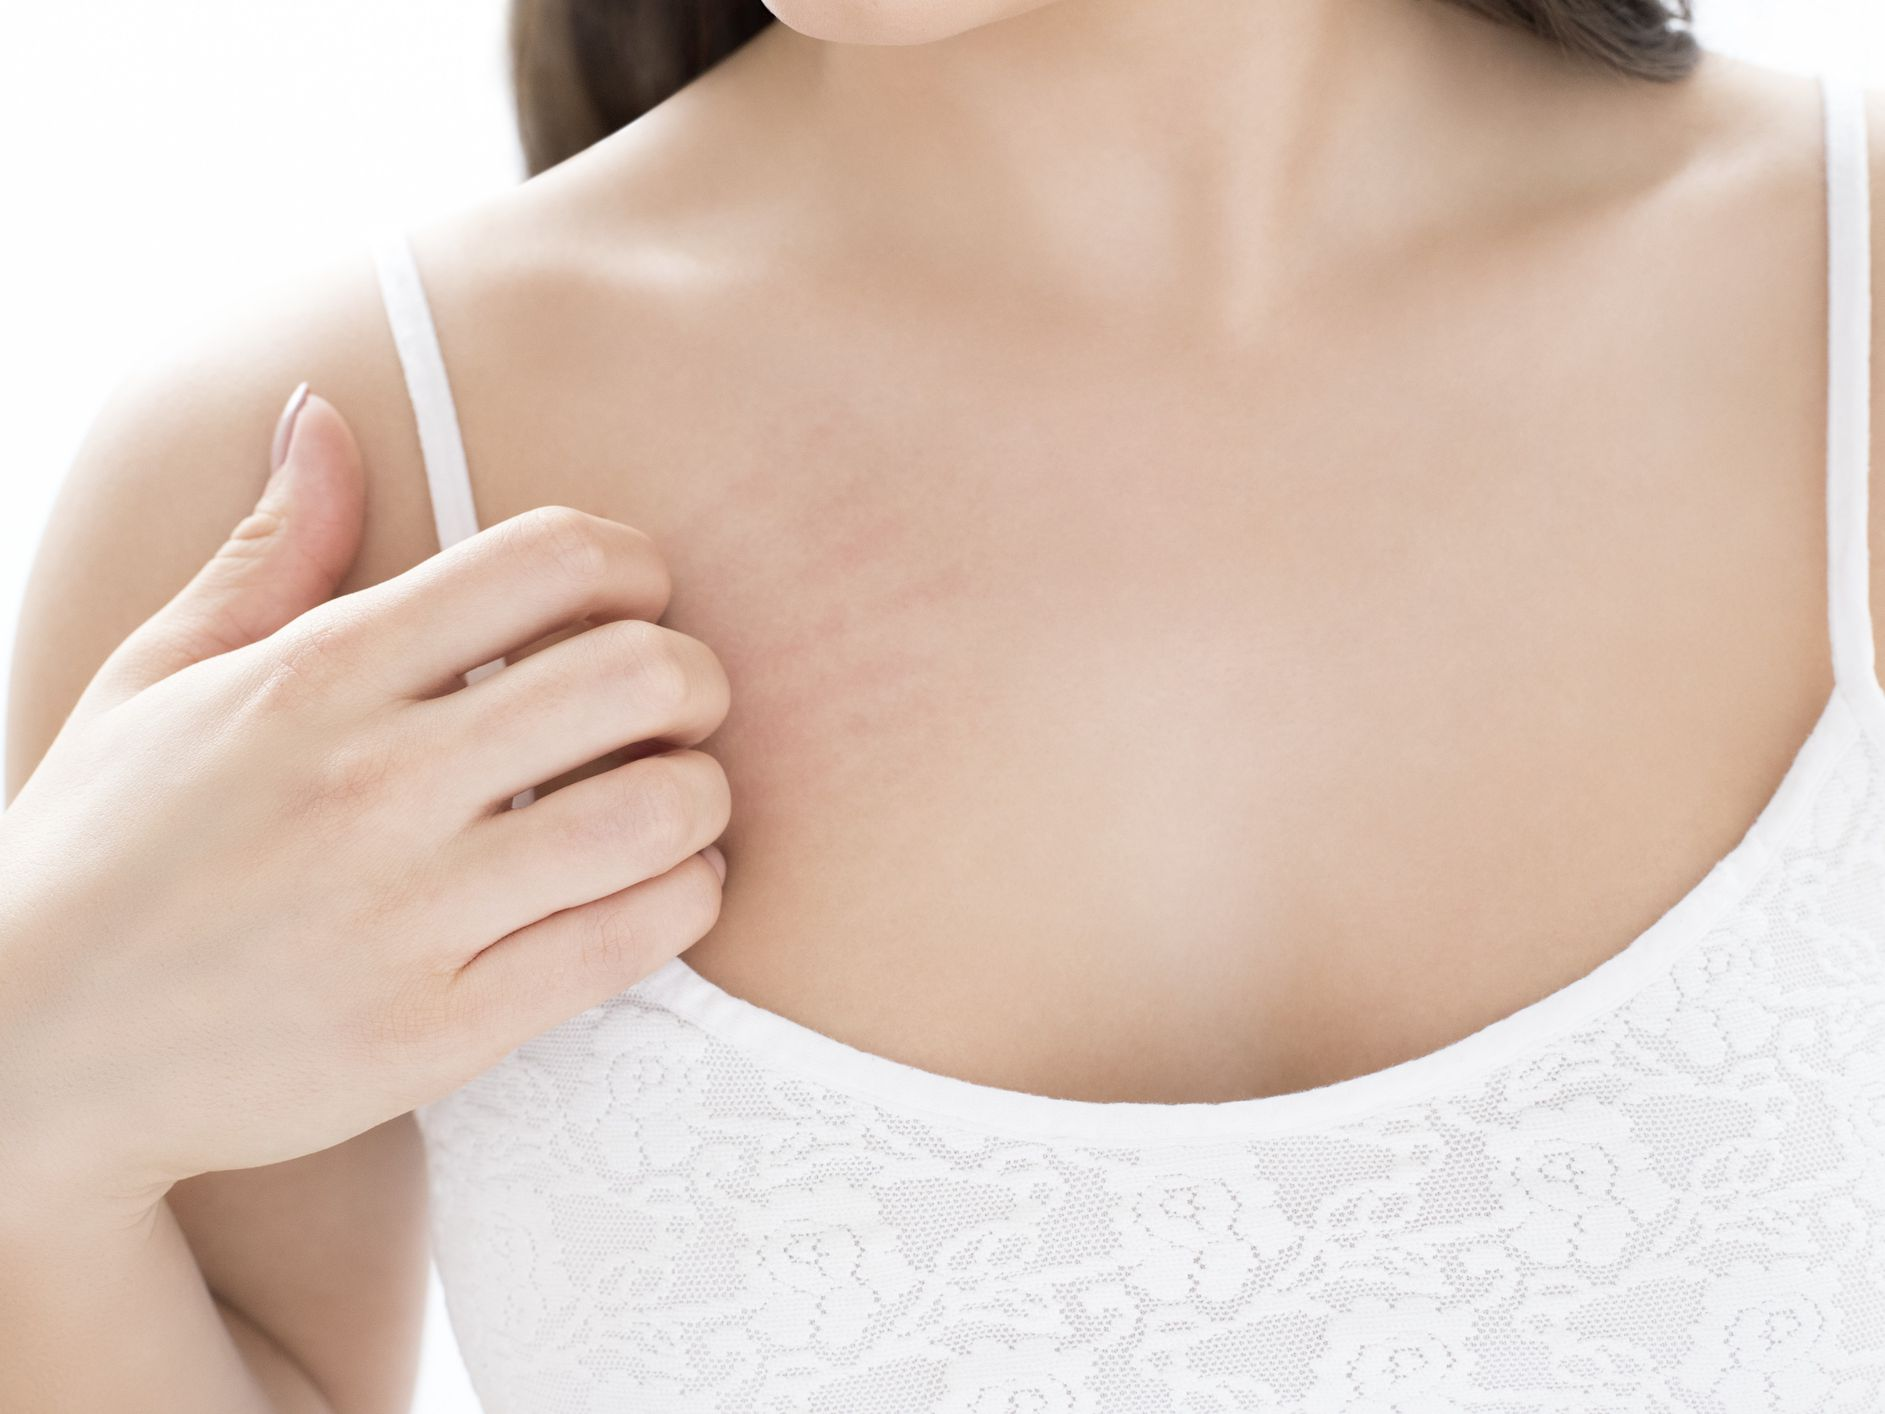 Causes Of Itchy Breasts Beyond Breast Cancer